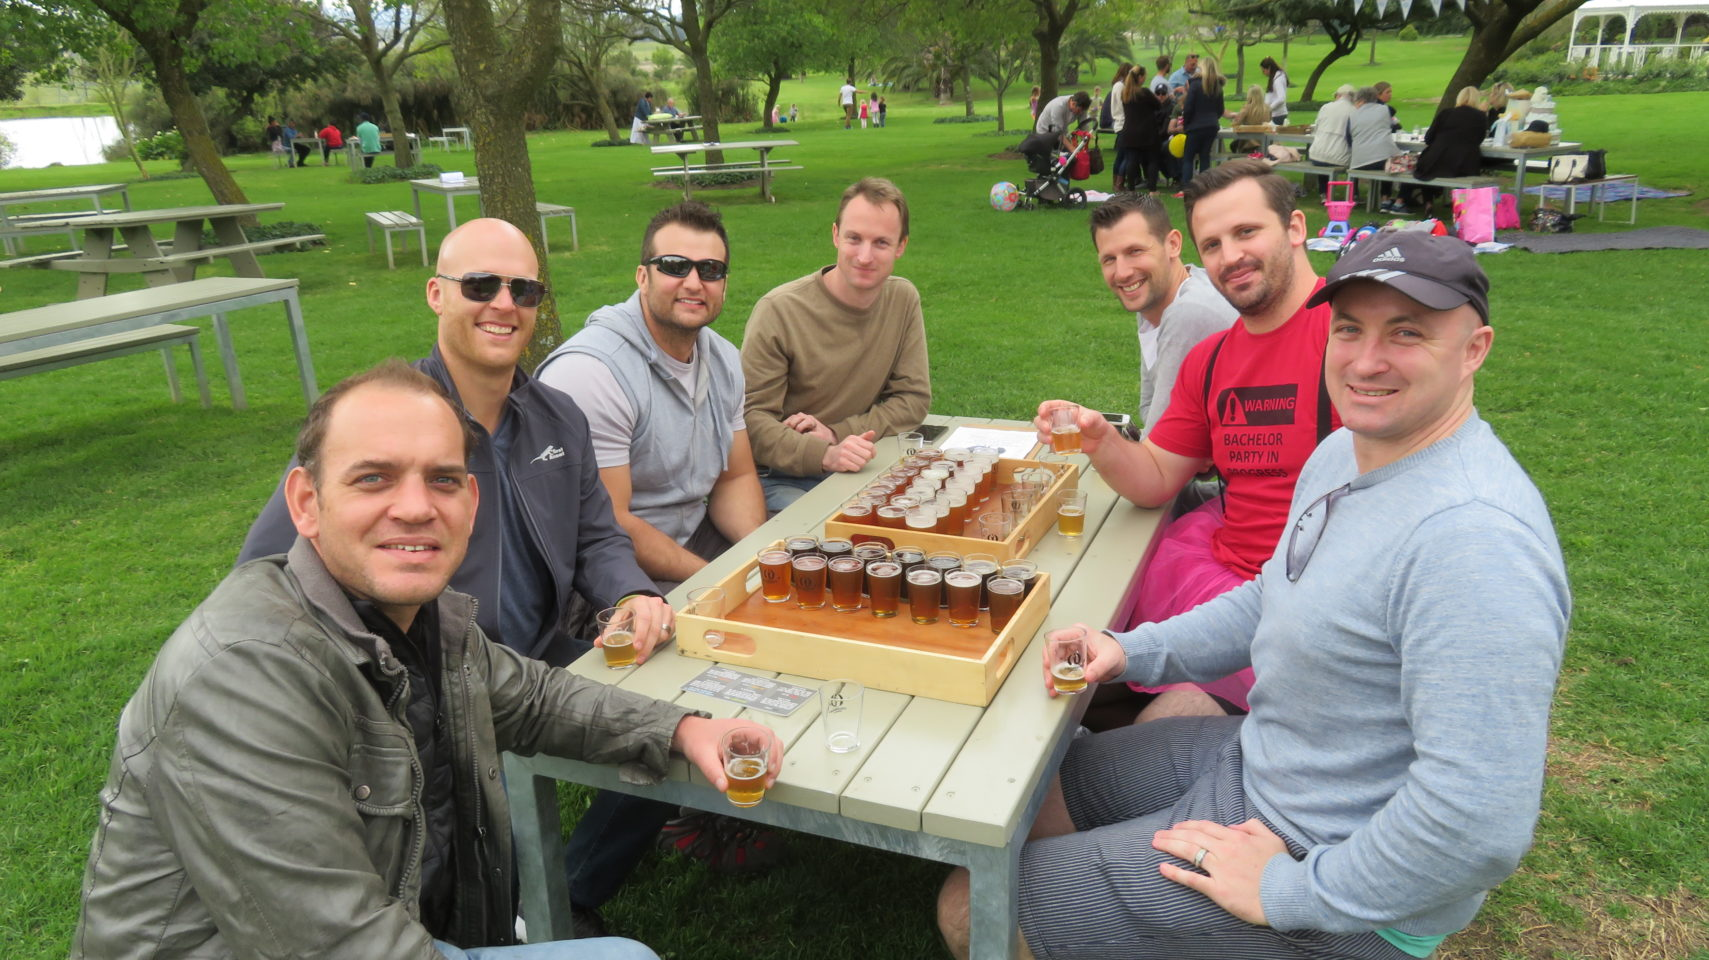 Bachelor Party getting underway with Stellenbosch beer tasting at Joostenberg Farm in Stellenbosch, South Africa